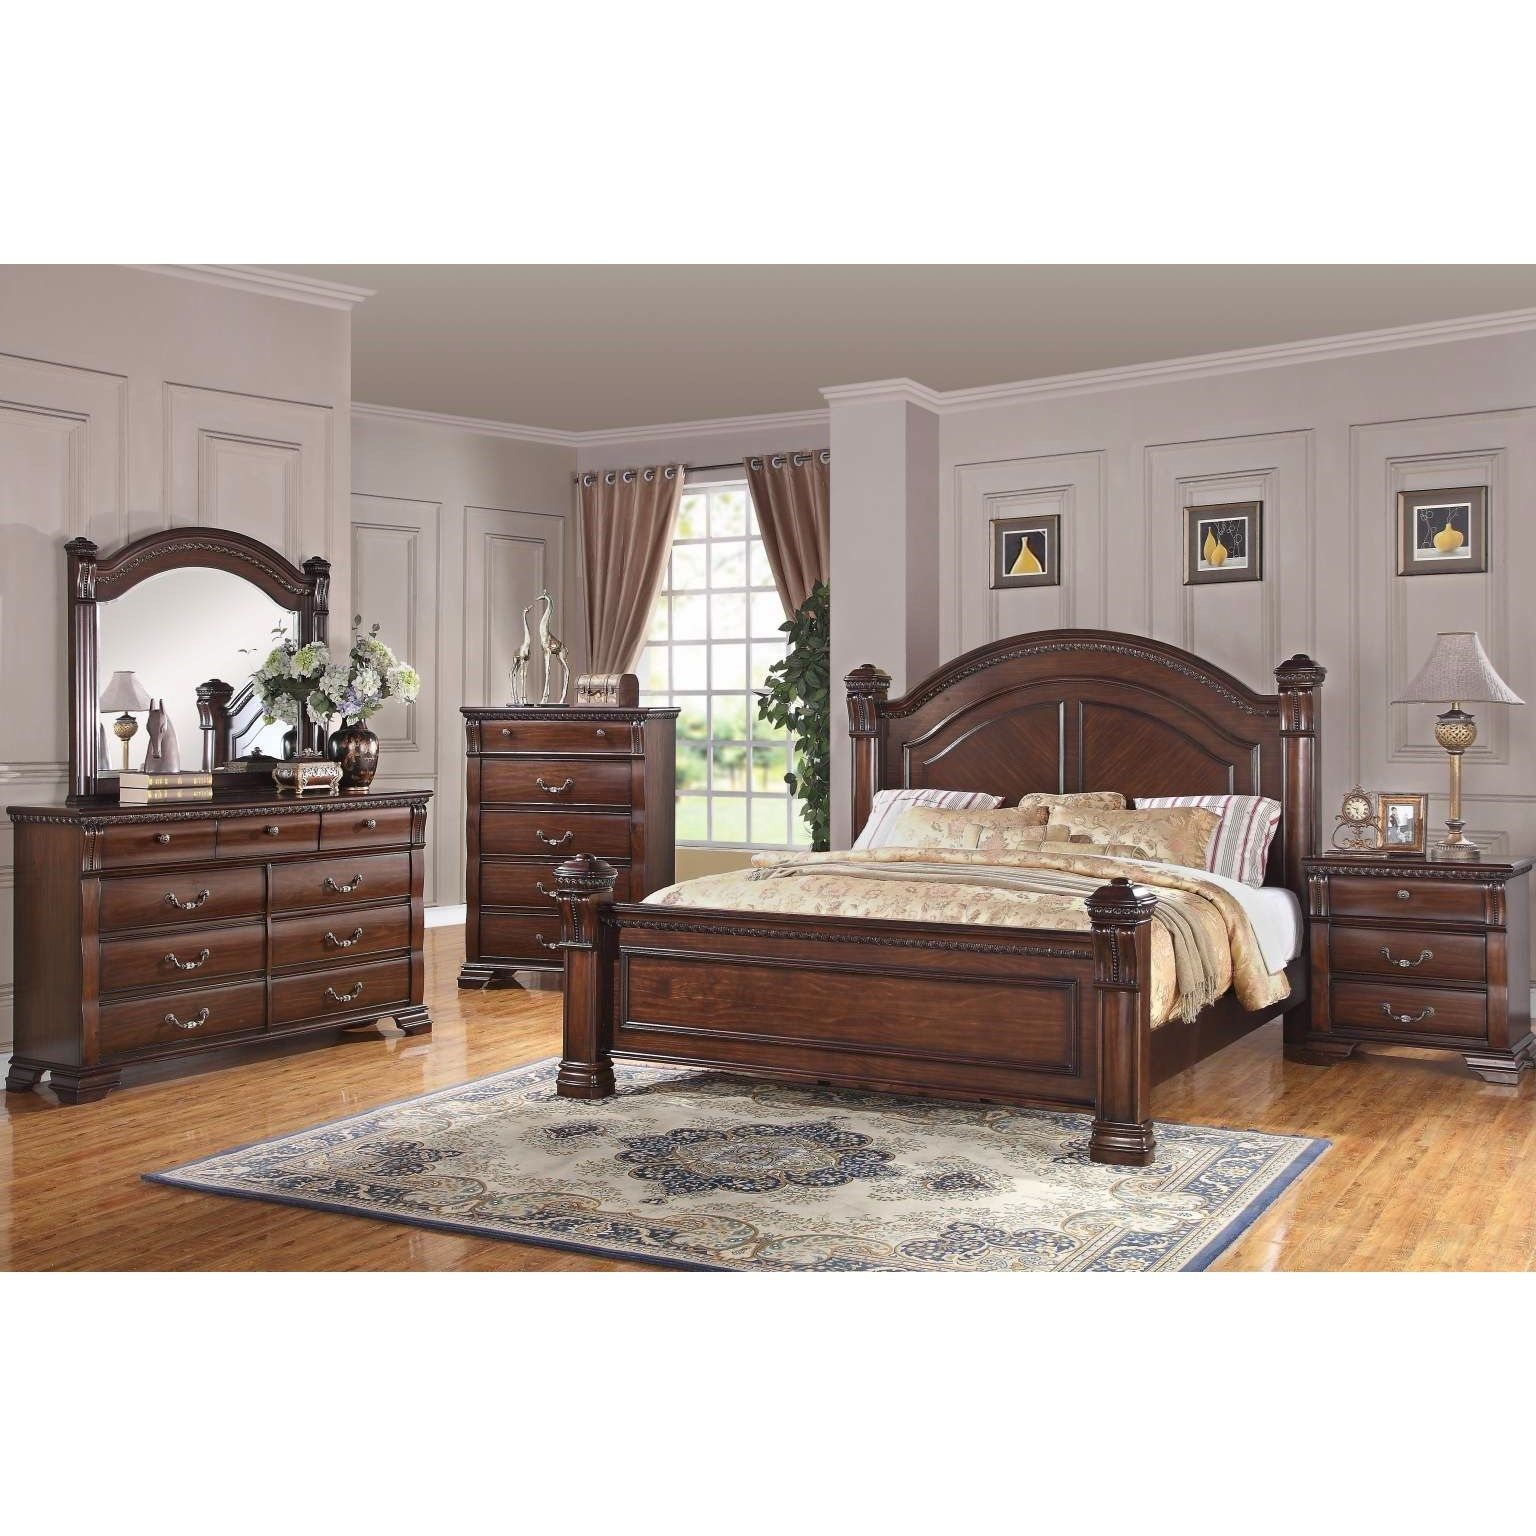 Isabella Queen Bedroom Group by Bernards at Wayside